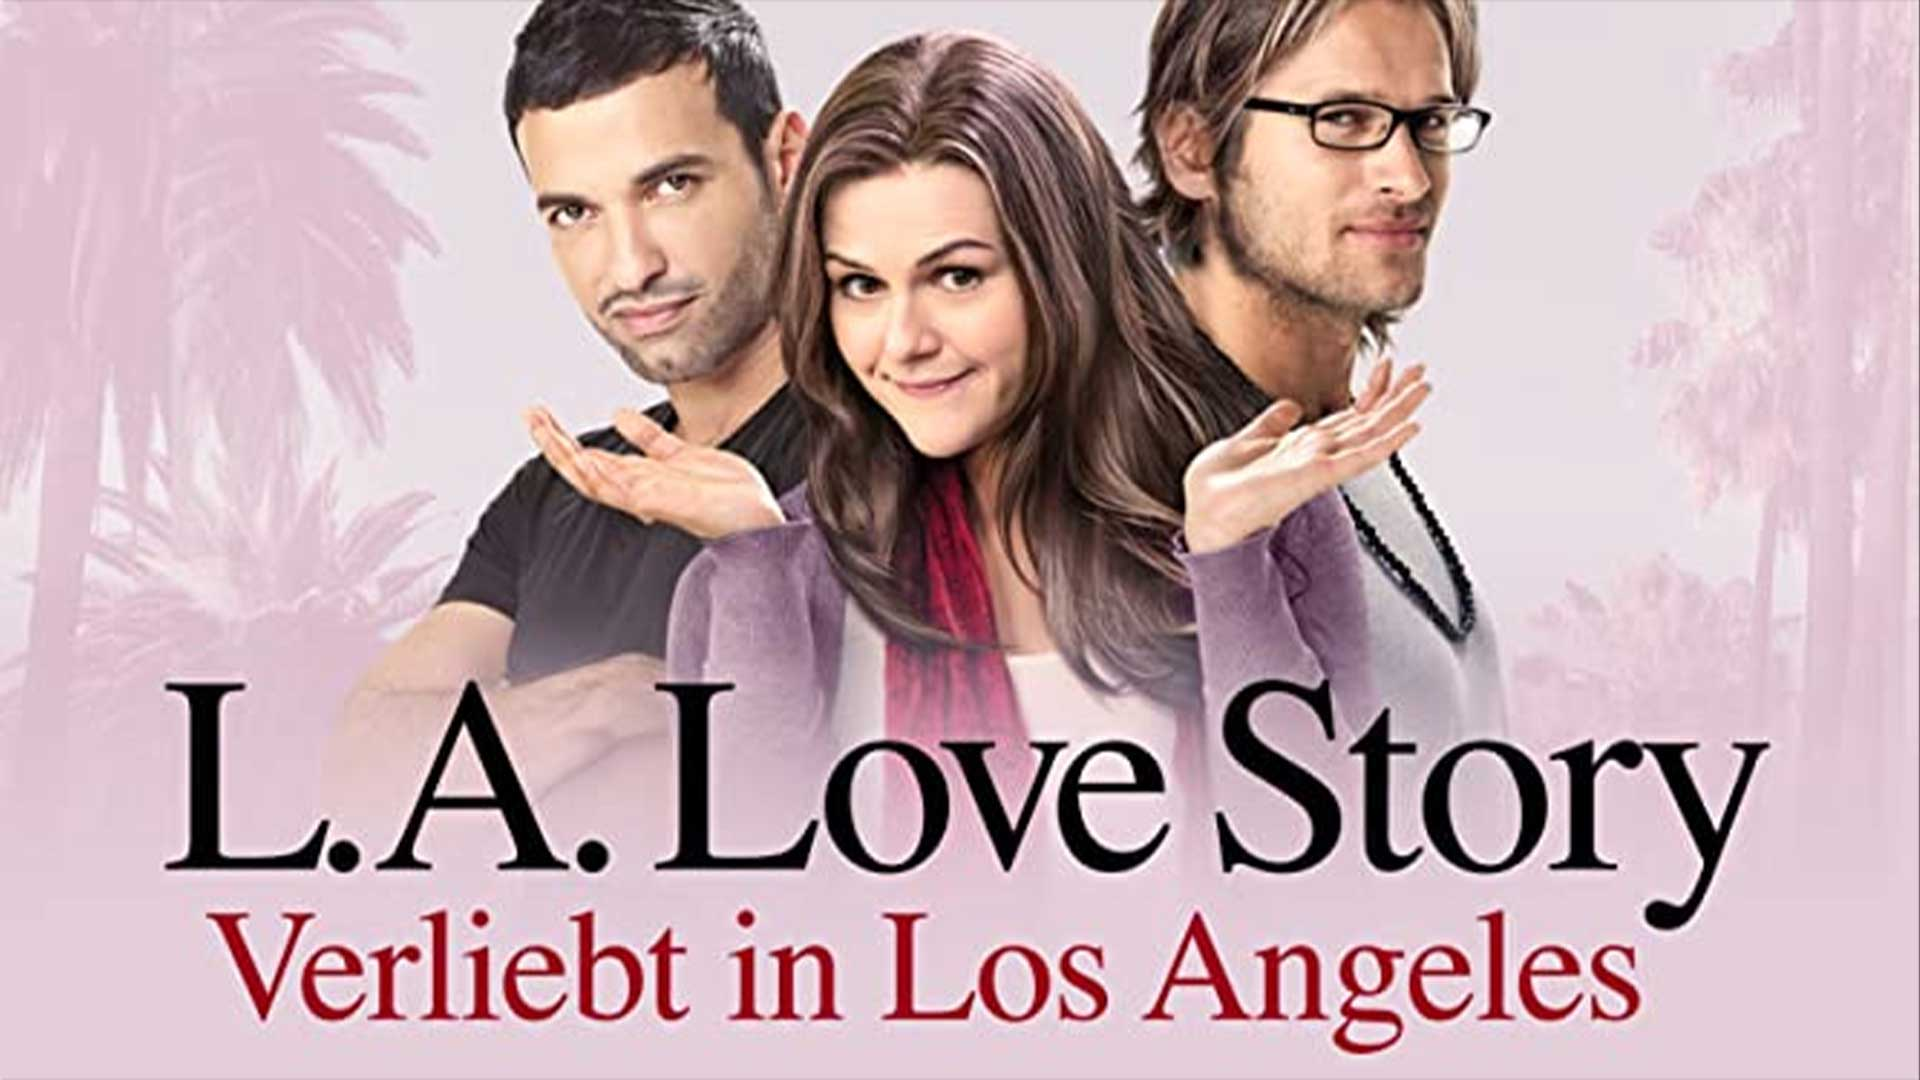 L.A. Love Story: Verliebt in Los Angeles